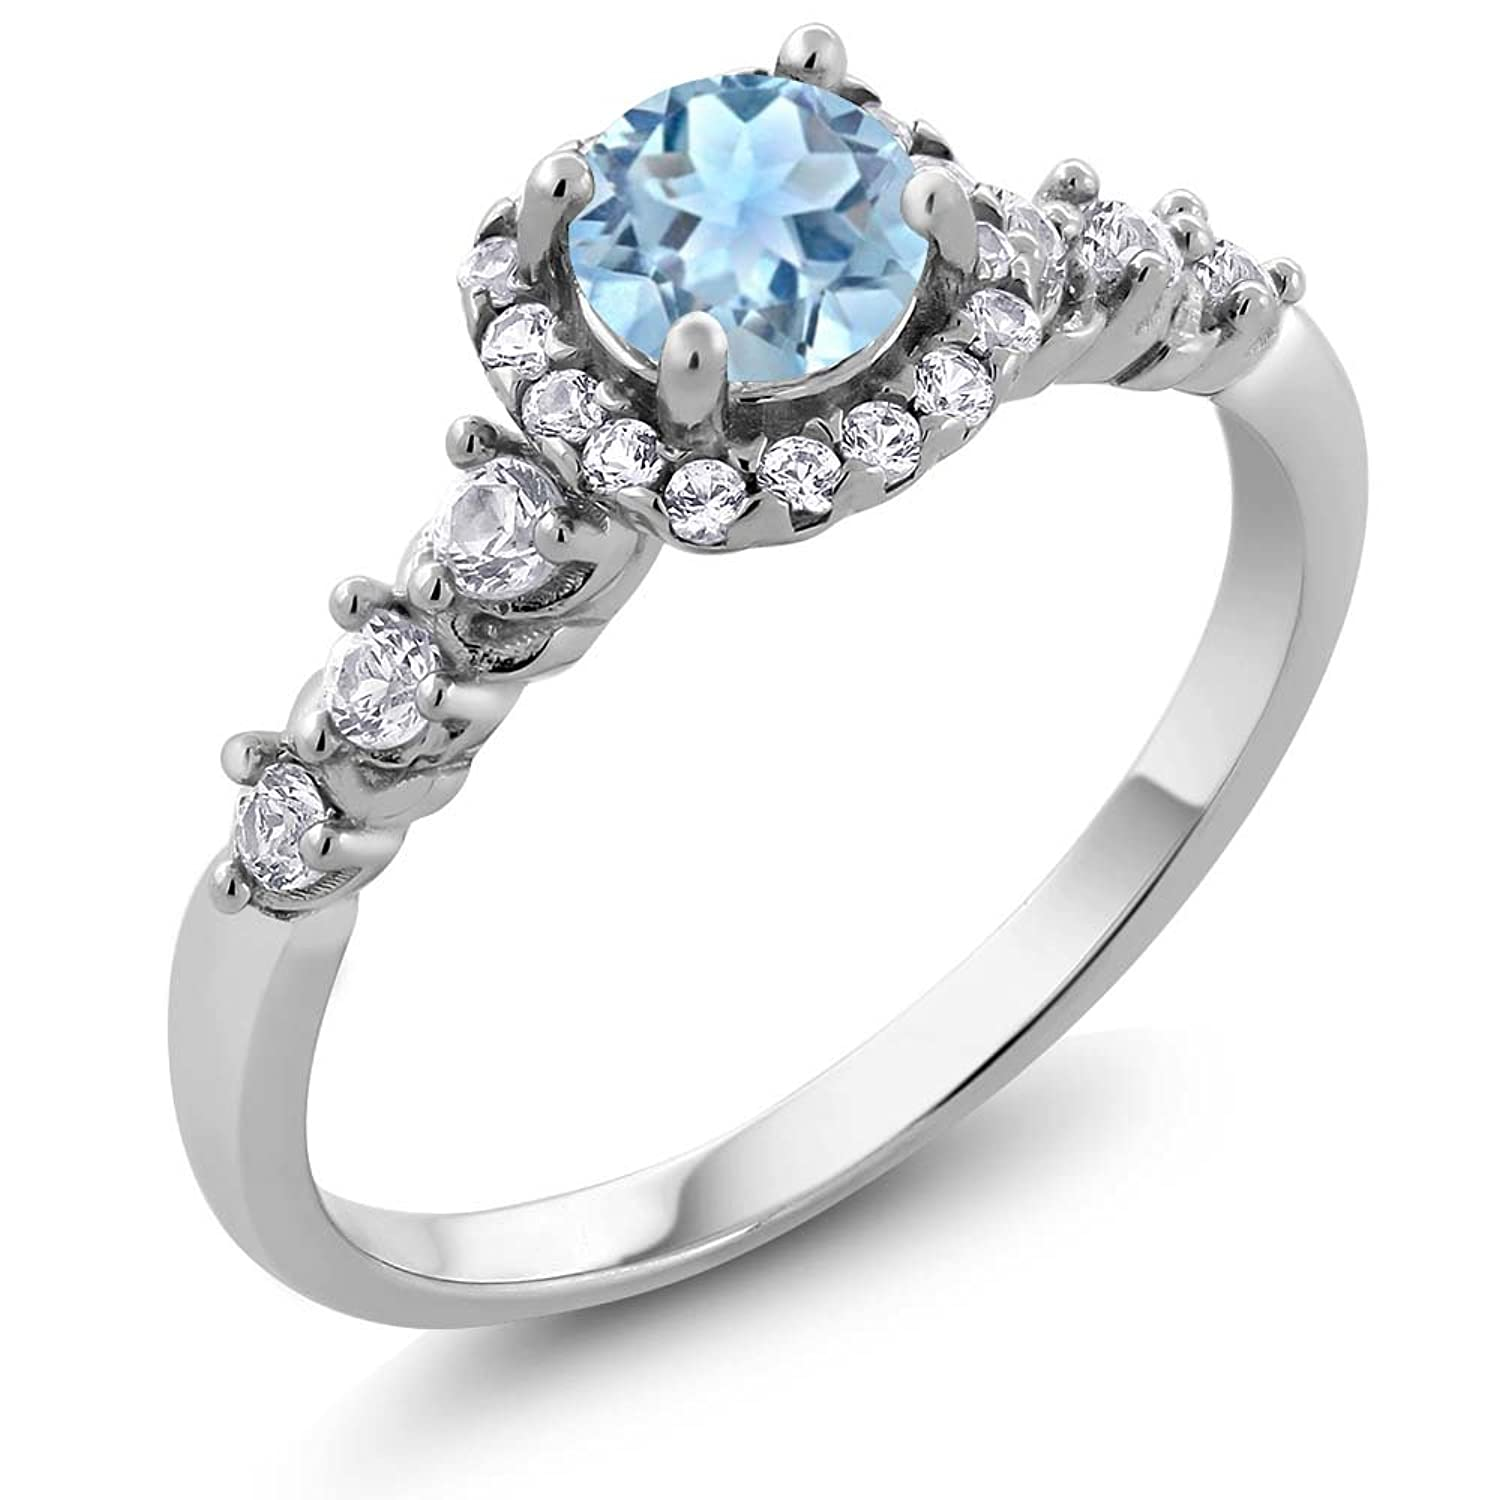 0.87 Ct Natural Round Aquamarine and White Created Sapphire 925 Sterling Silver Ladies Ring (Available in size 5, 6, 7, 8, 9)